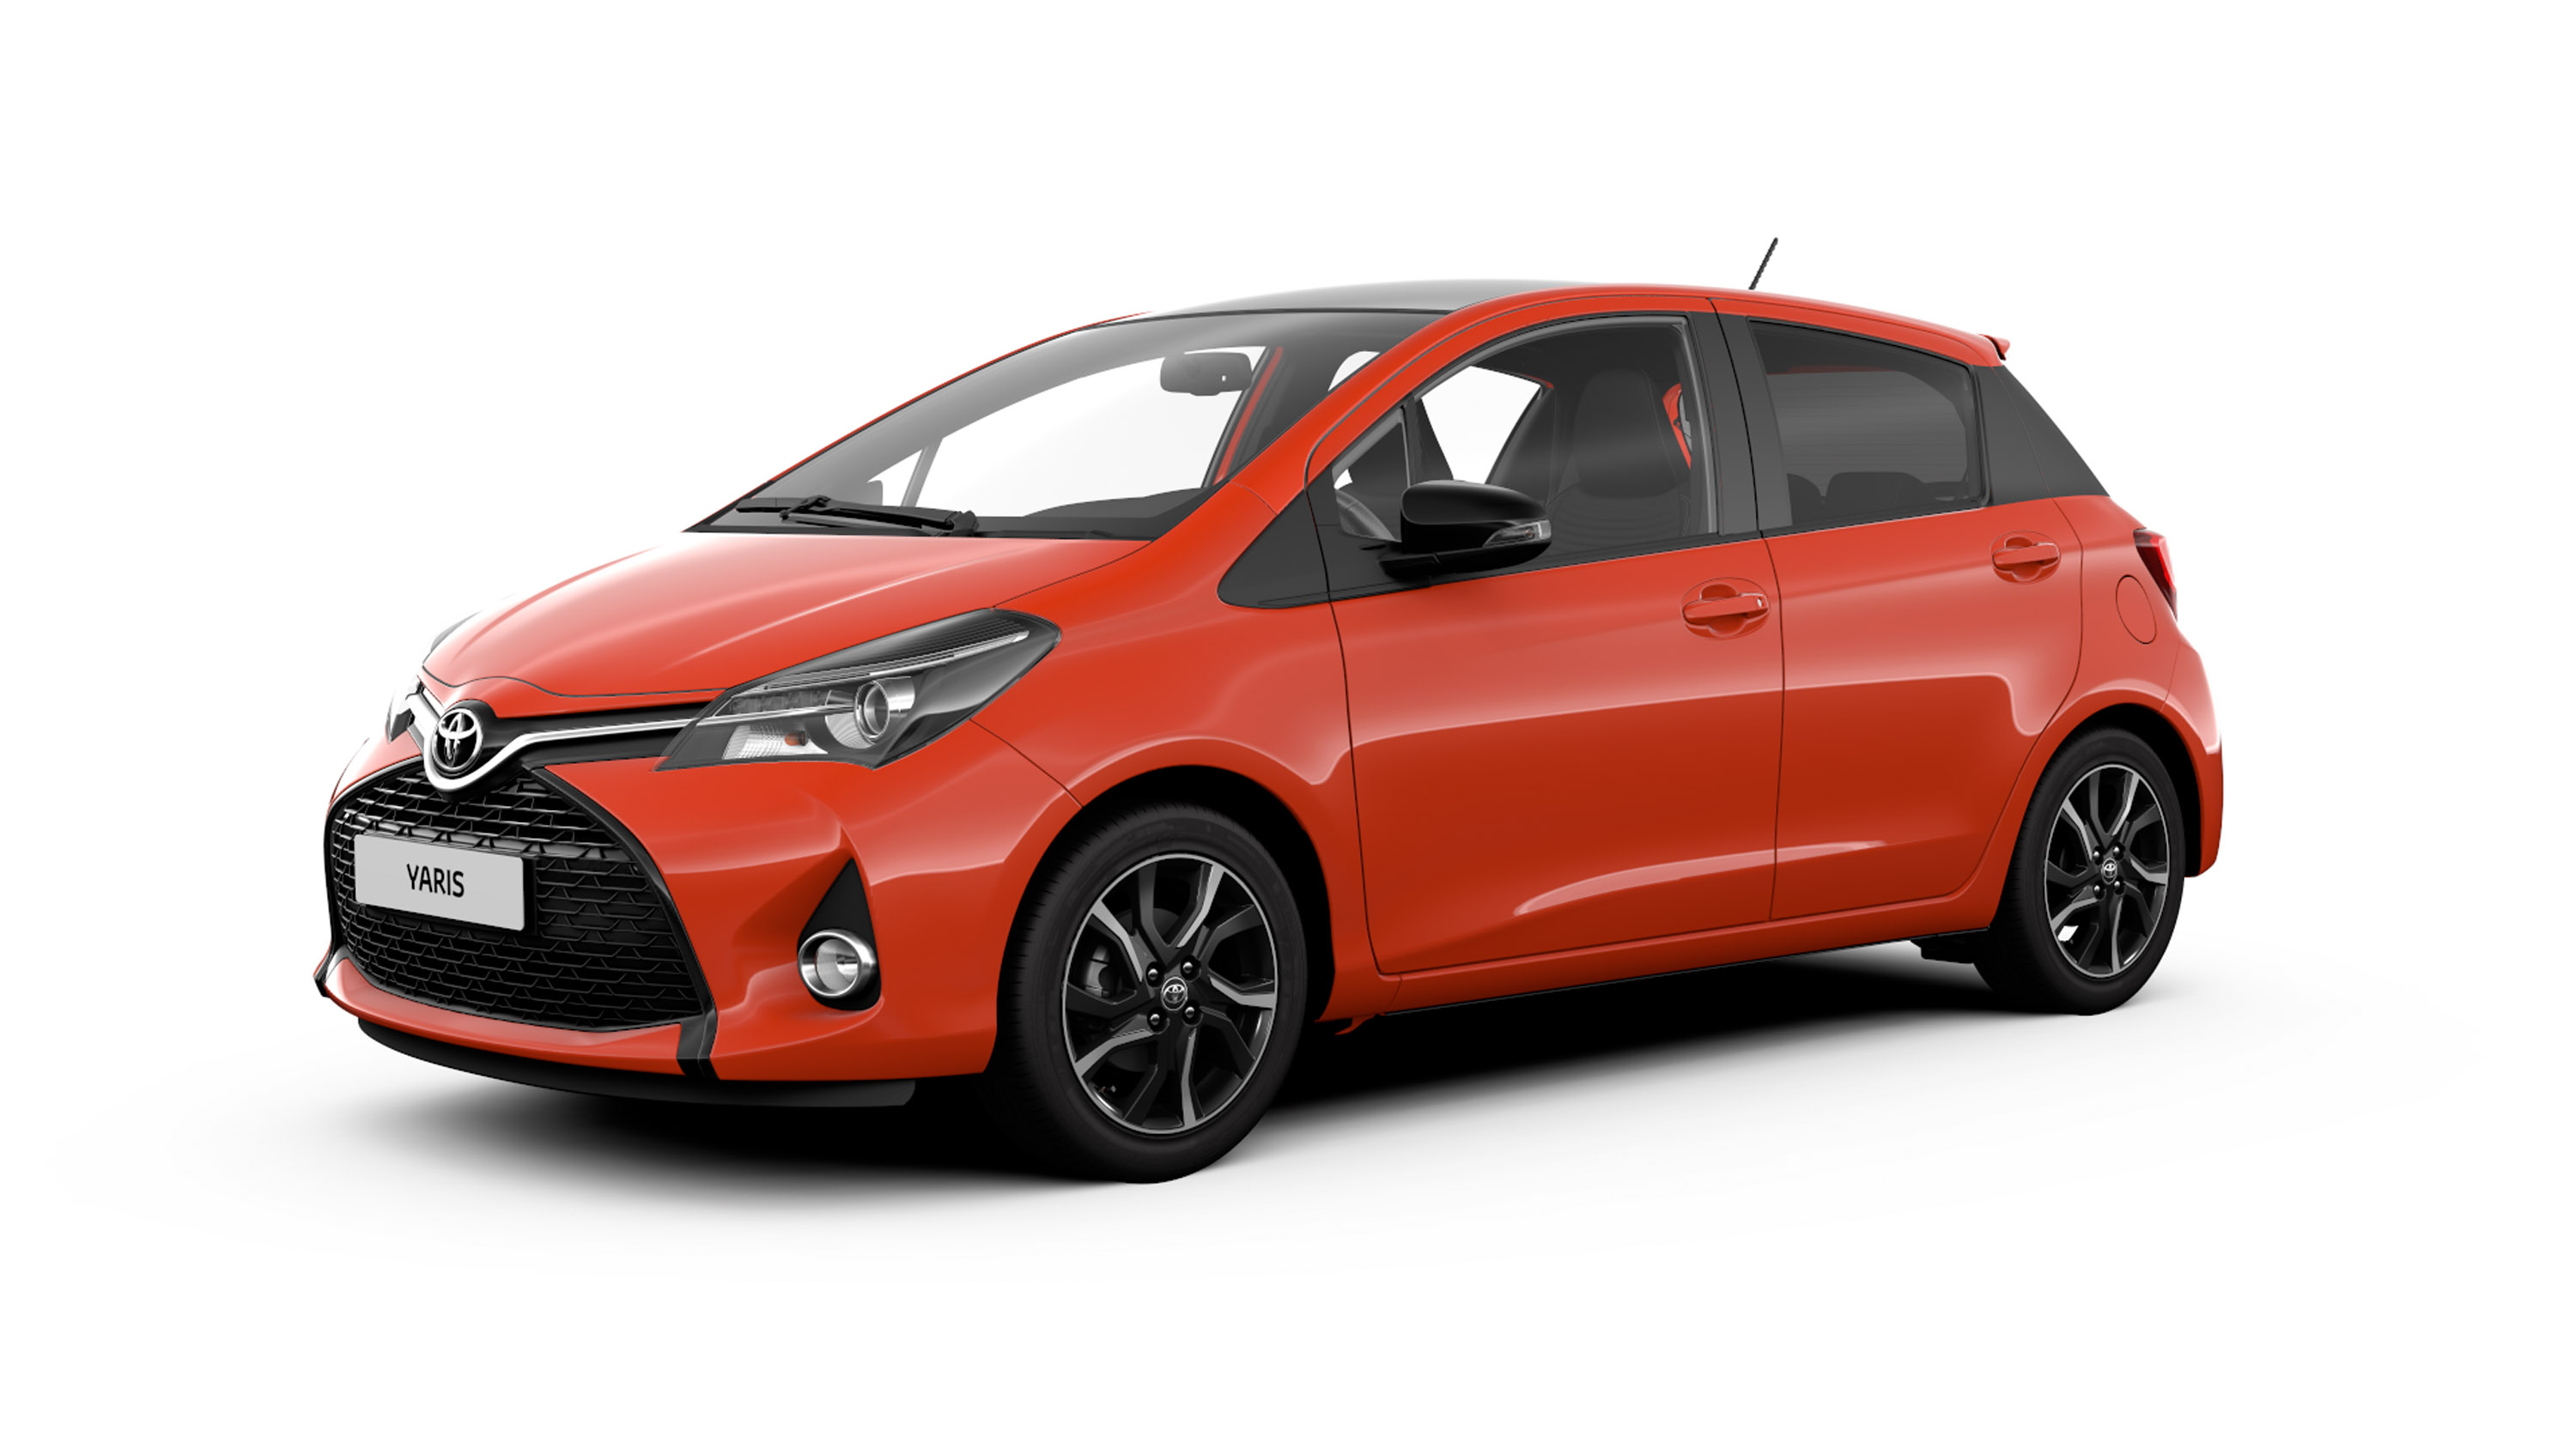 toyota reveals the yaris orange edition. Black Bedroom Furniture Sets. Home Design Ideas